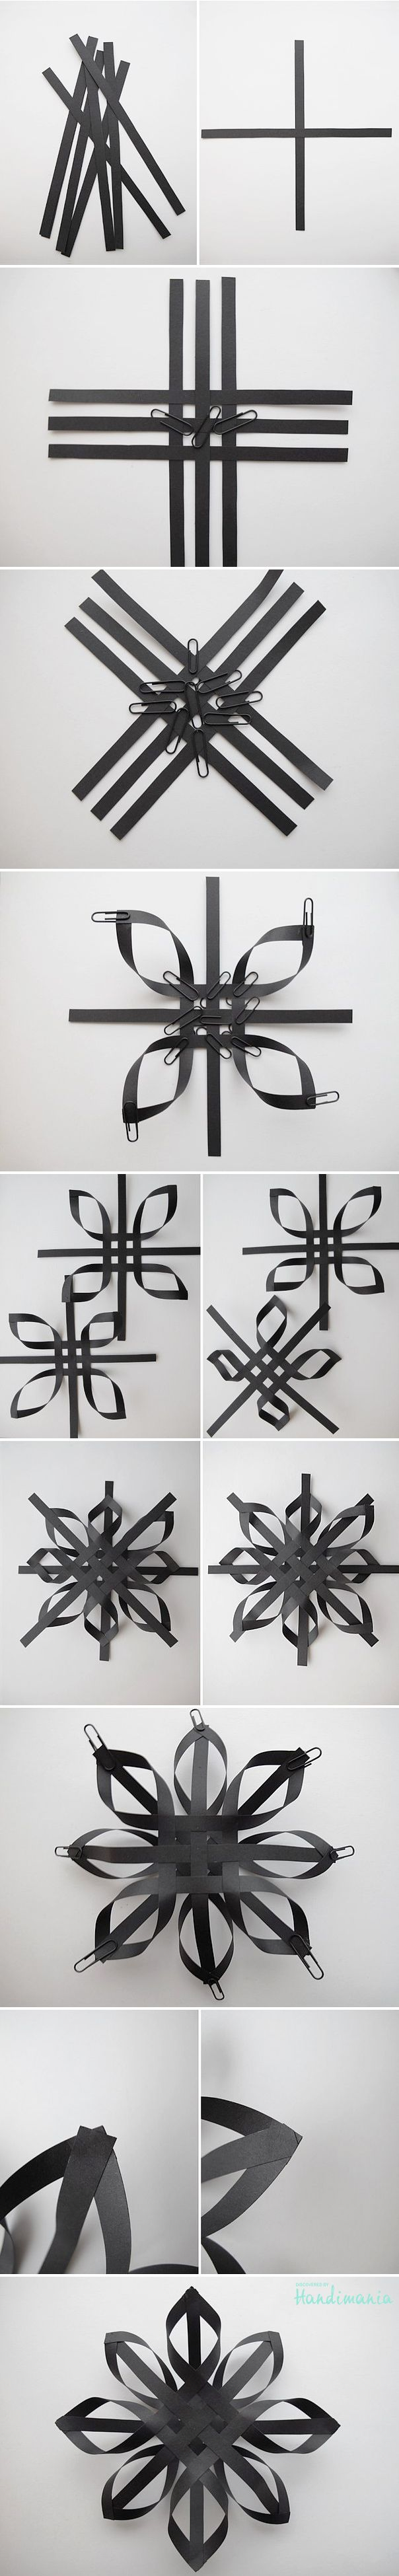 Christmas ornament black and white 187 home design 2017 - Black Paper Snowflake Snowflake Designsstar Decorationspaper